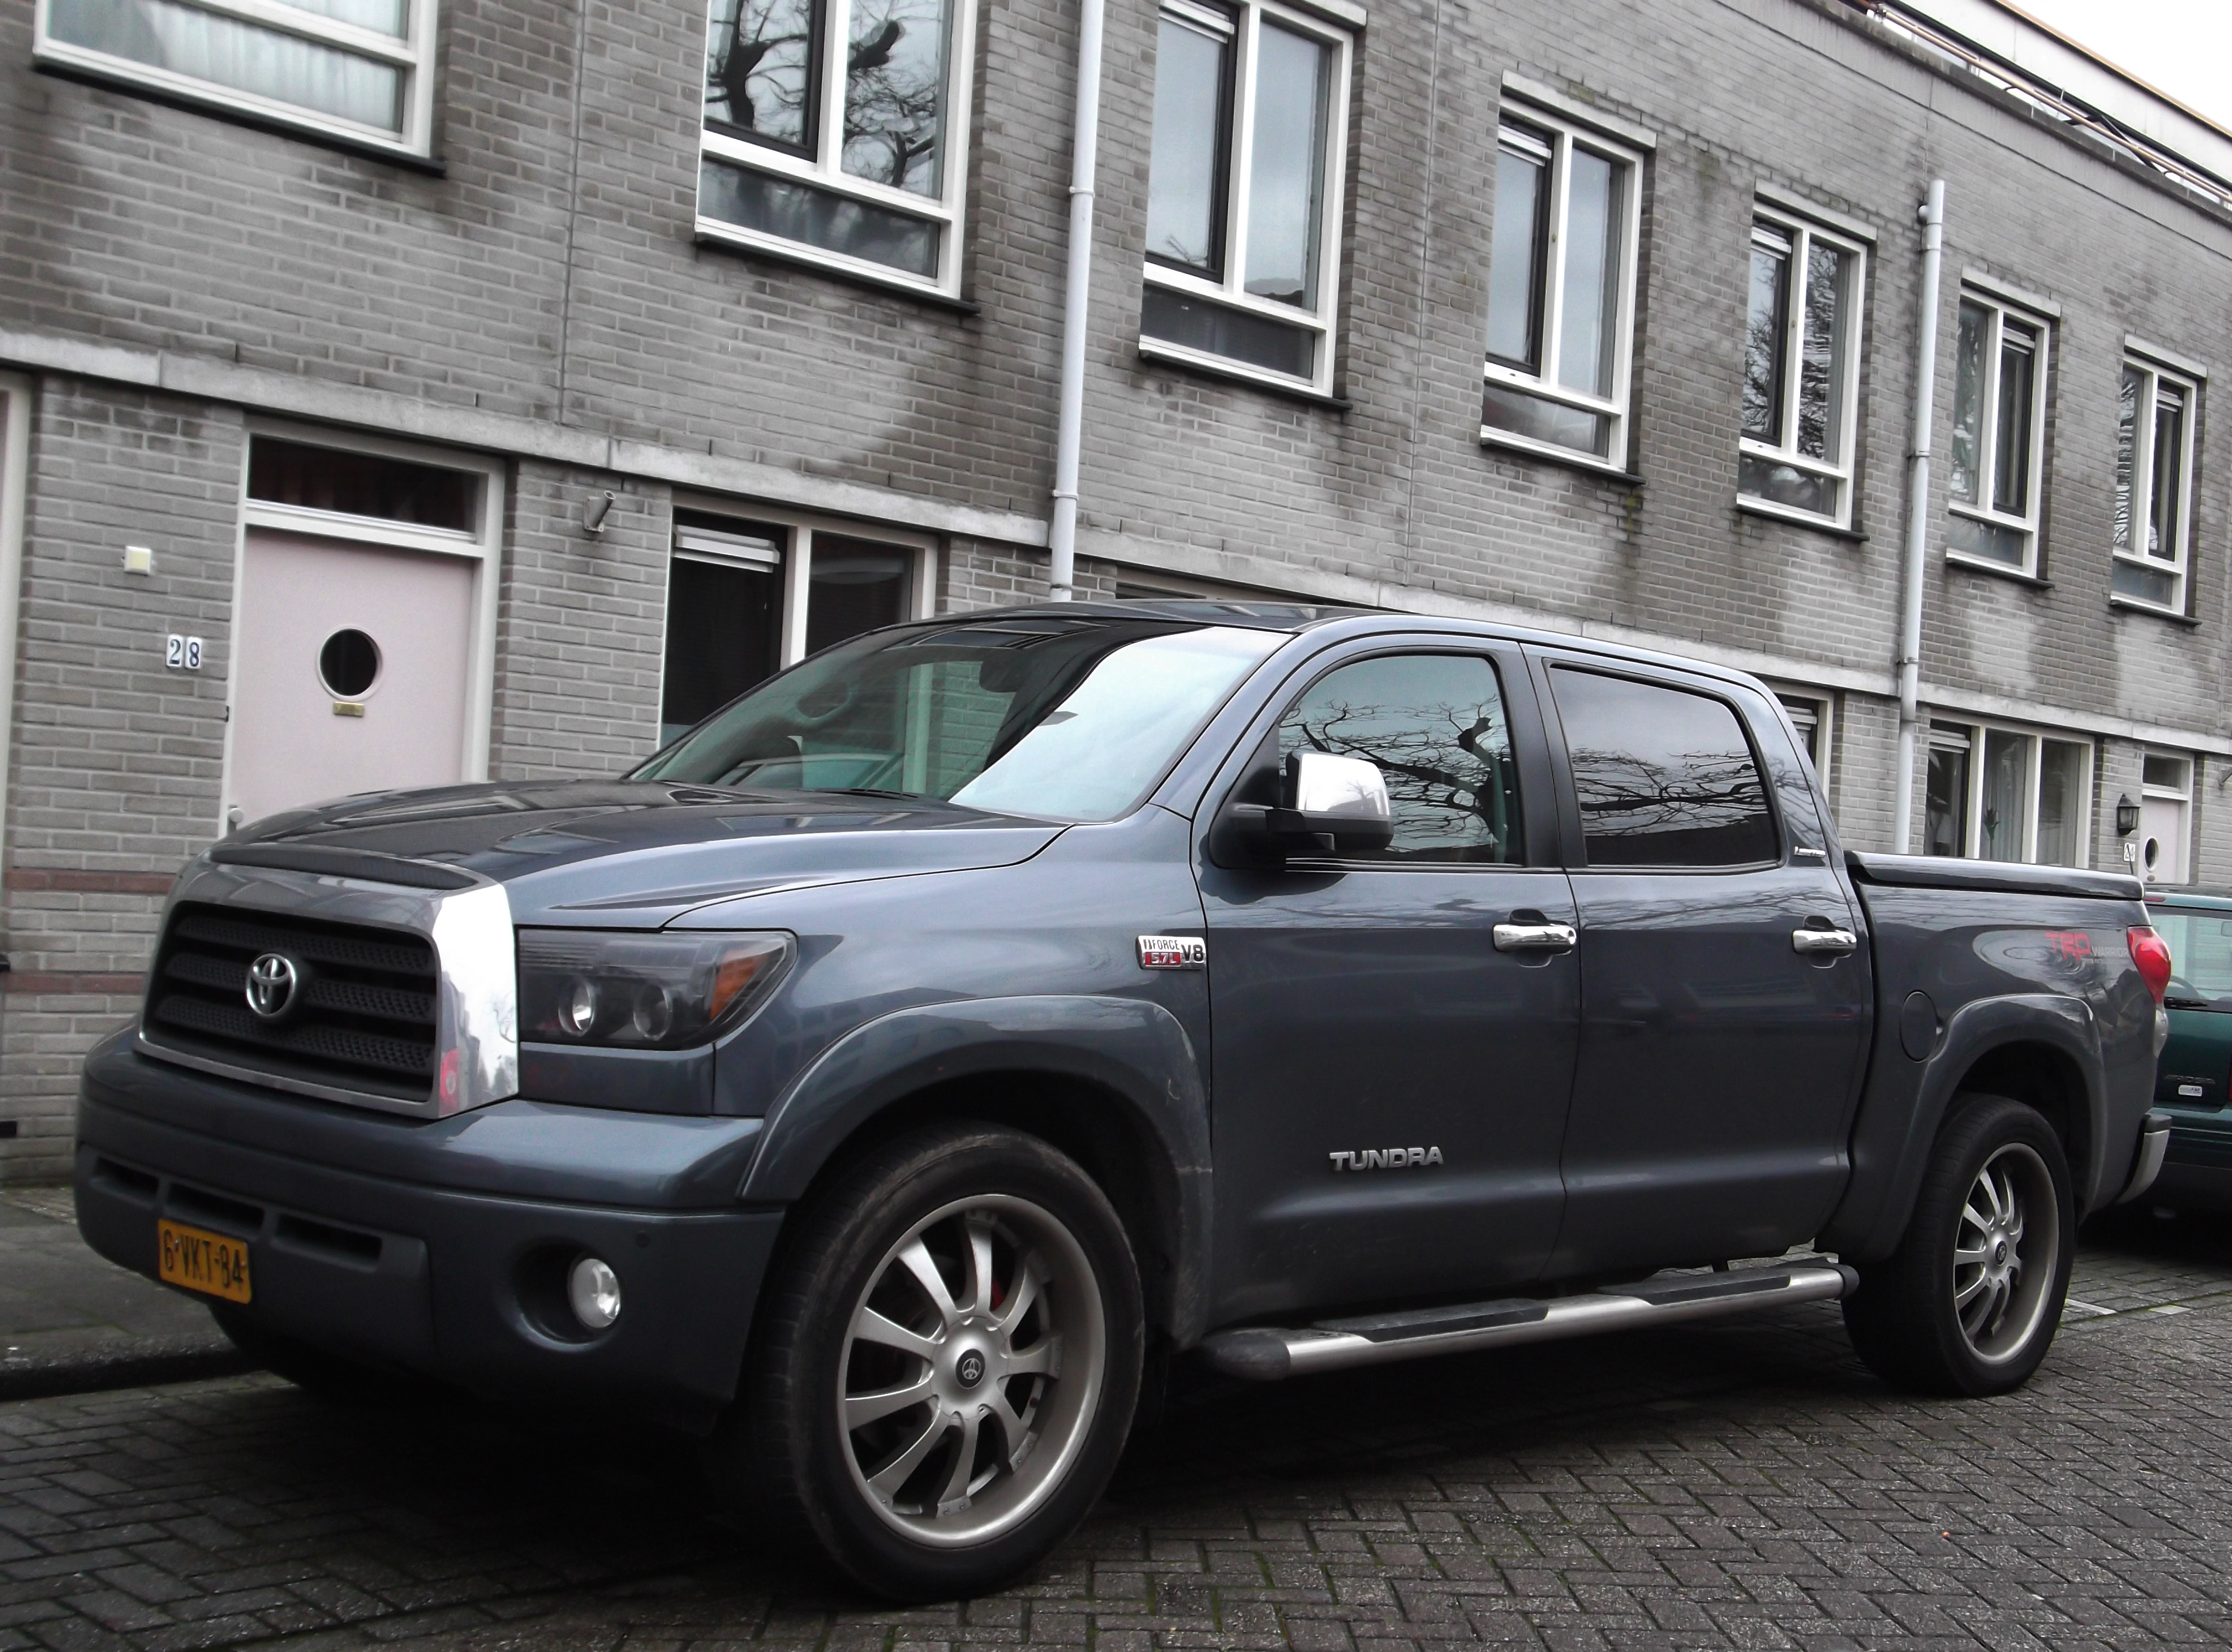 https://upload.wikimedia.org/wikipedia/commons/0/06/Toyota_Tundra_%22TRD_Rock_Warrior%22_%2811840639606%29.jpg